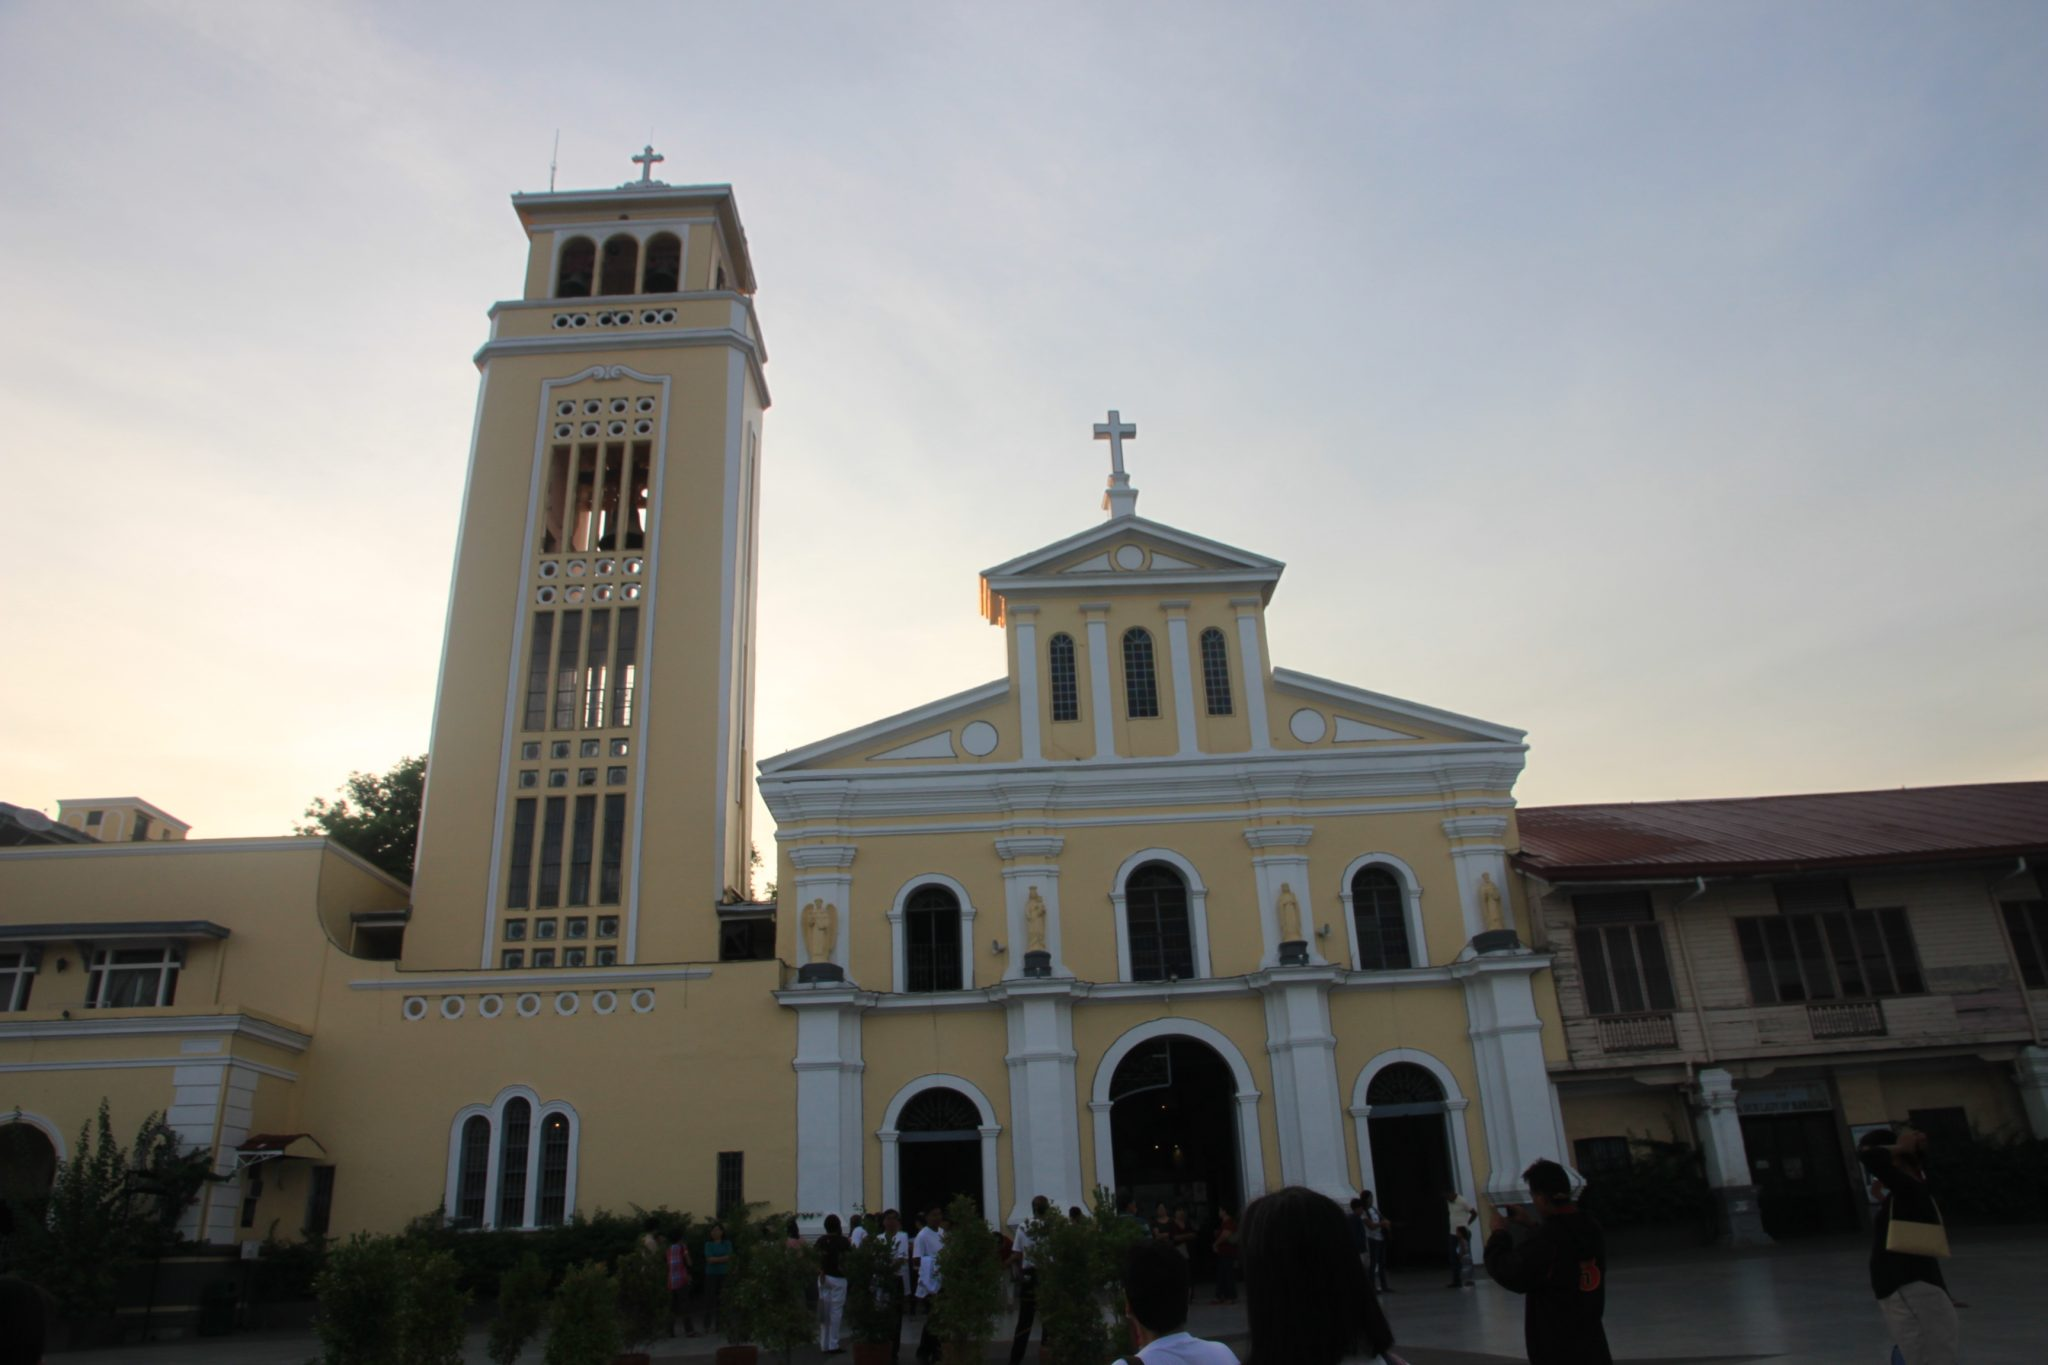 Visiting Our Lady of Manaoag Minor Basilica